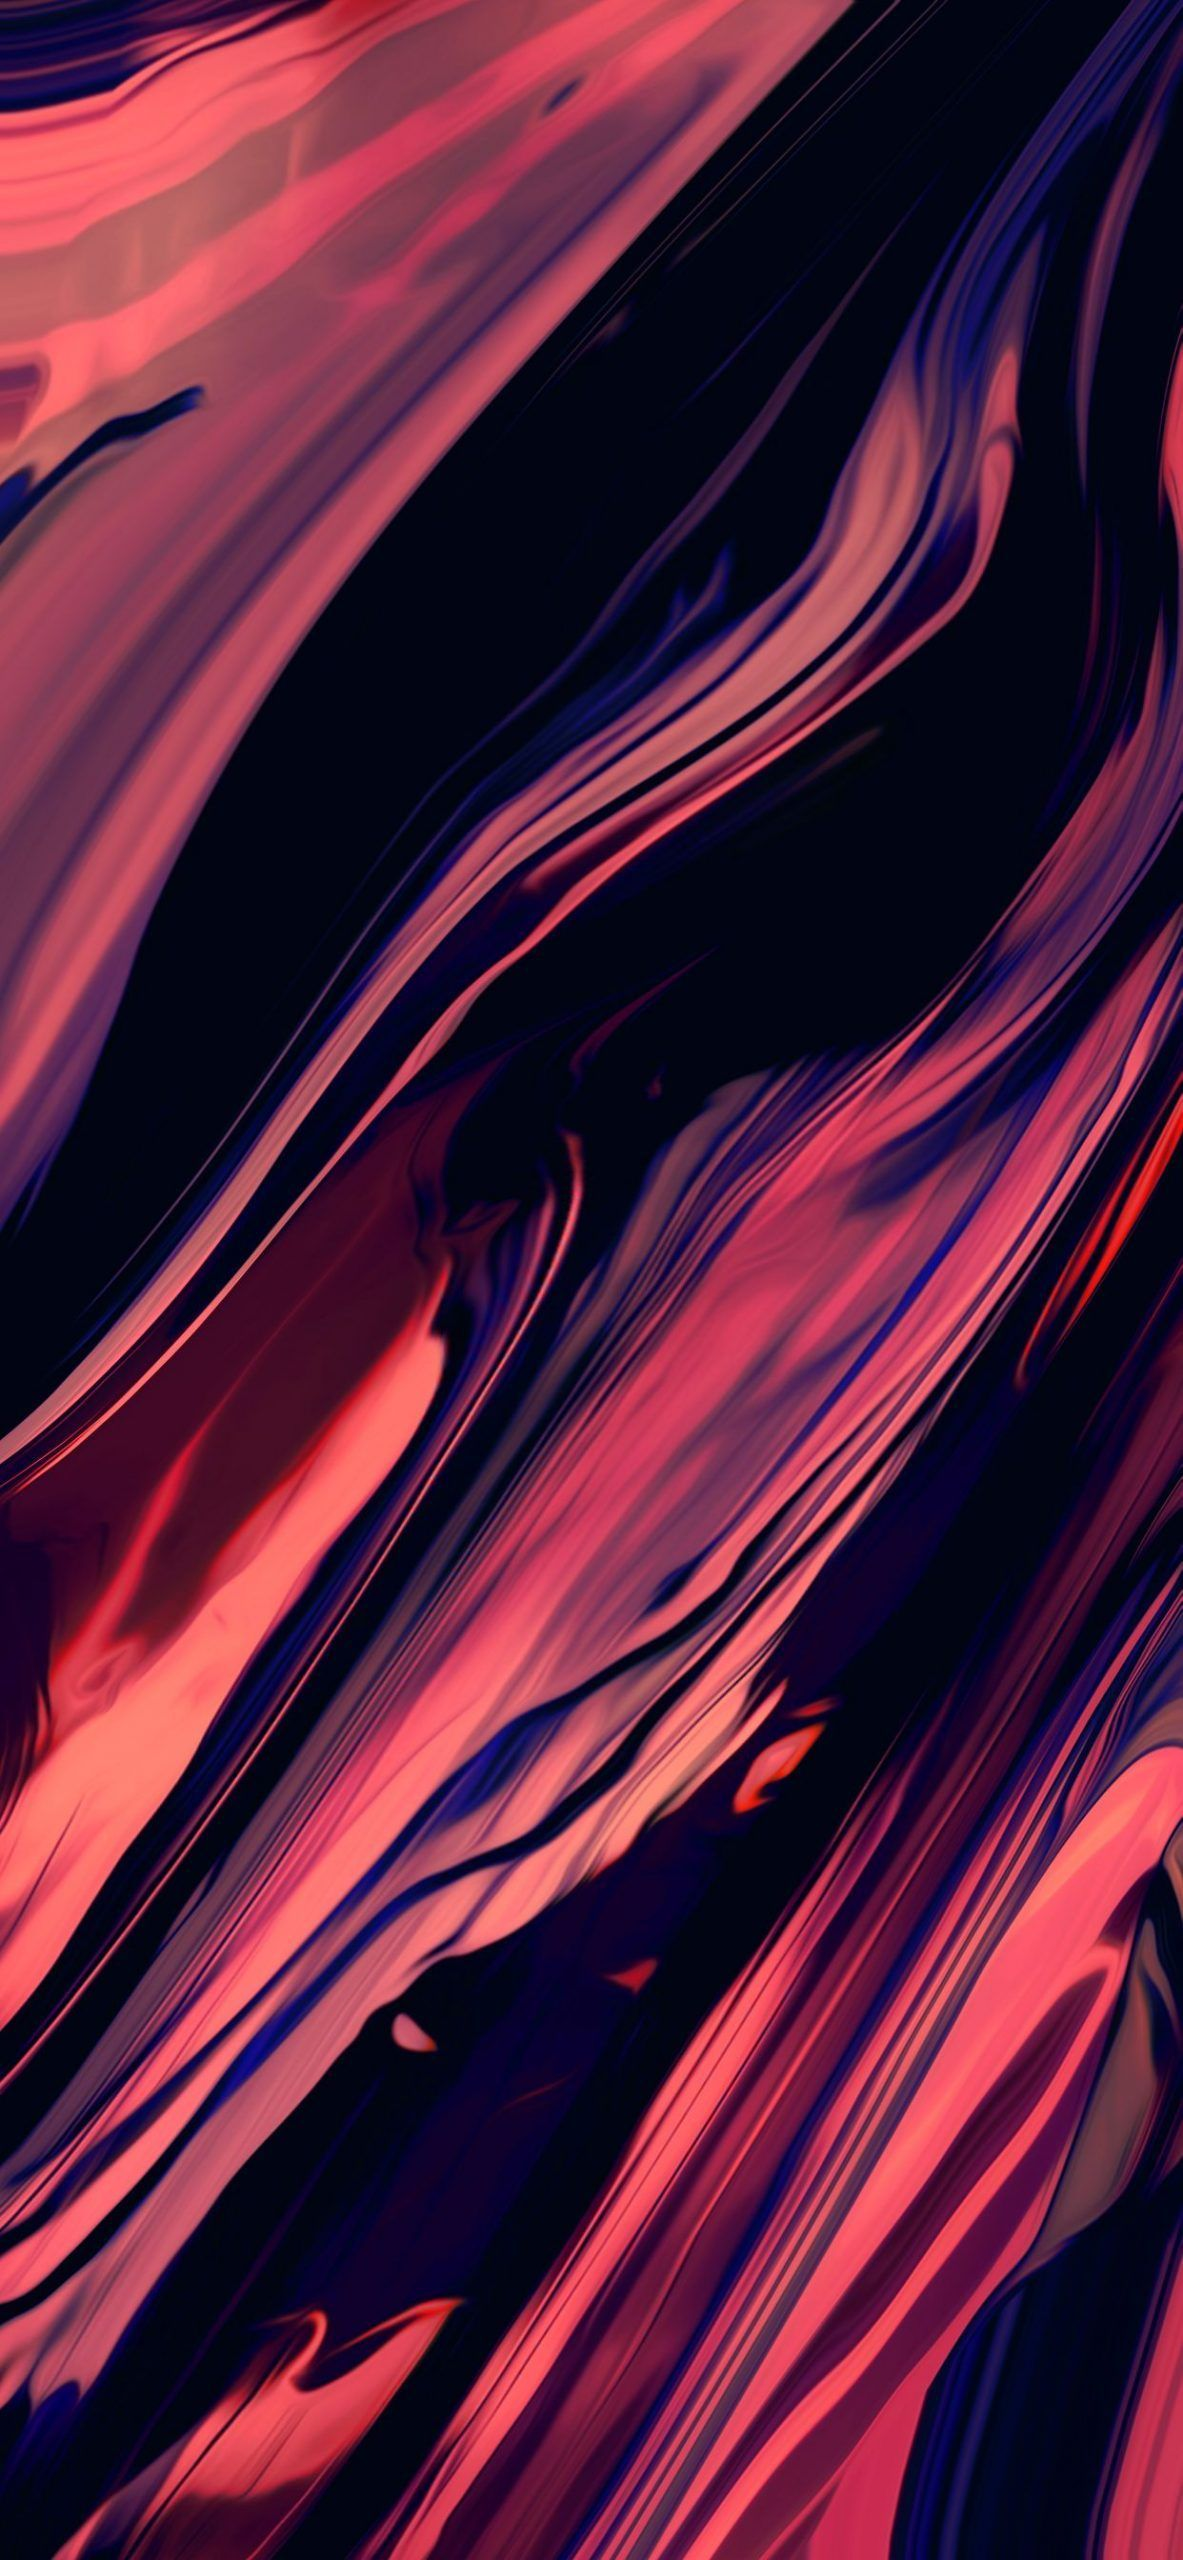 Lg V40 Thinq Abstract Mobile Hd Wallpapers 1242x2688 Abstract Mobile Wallpaper Wallpaper Downloads